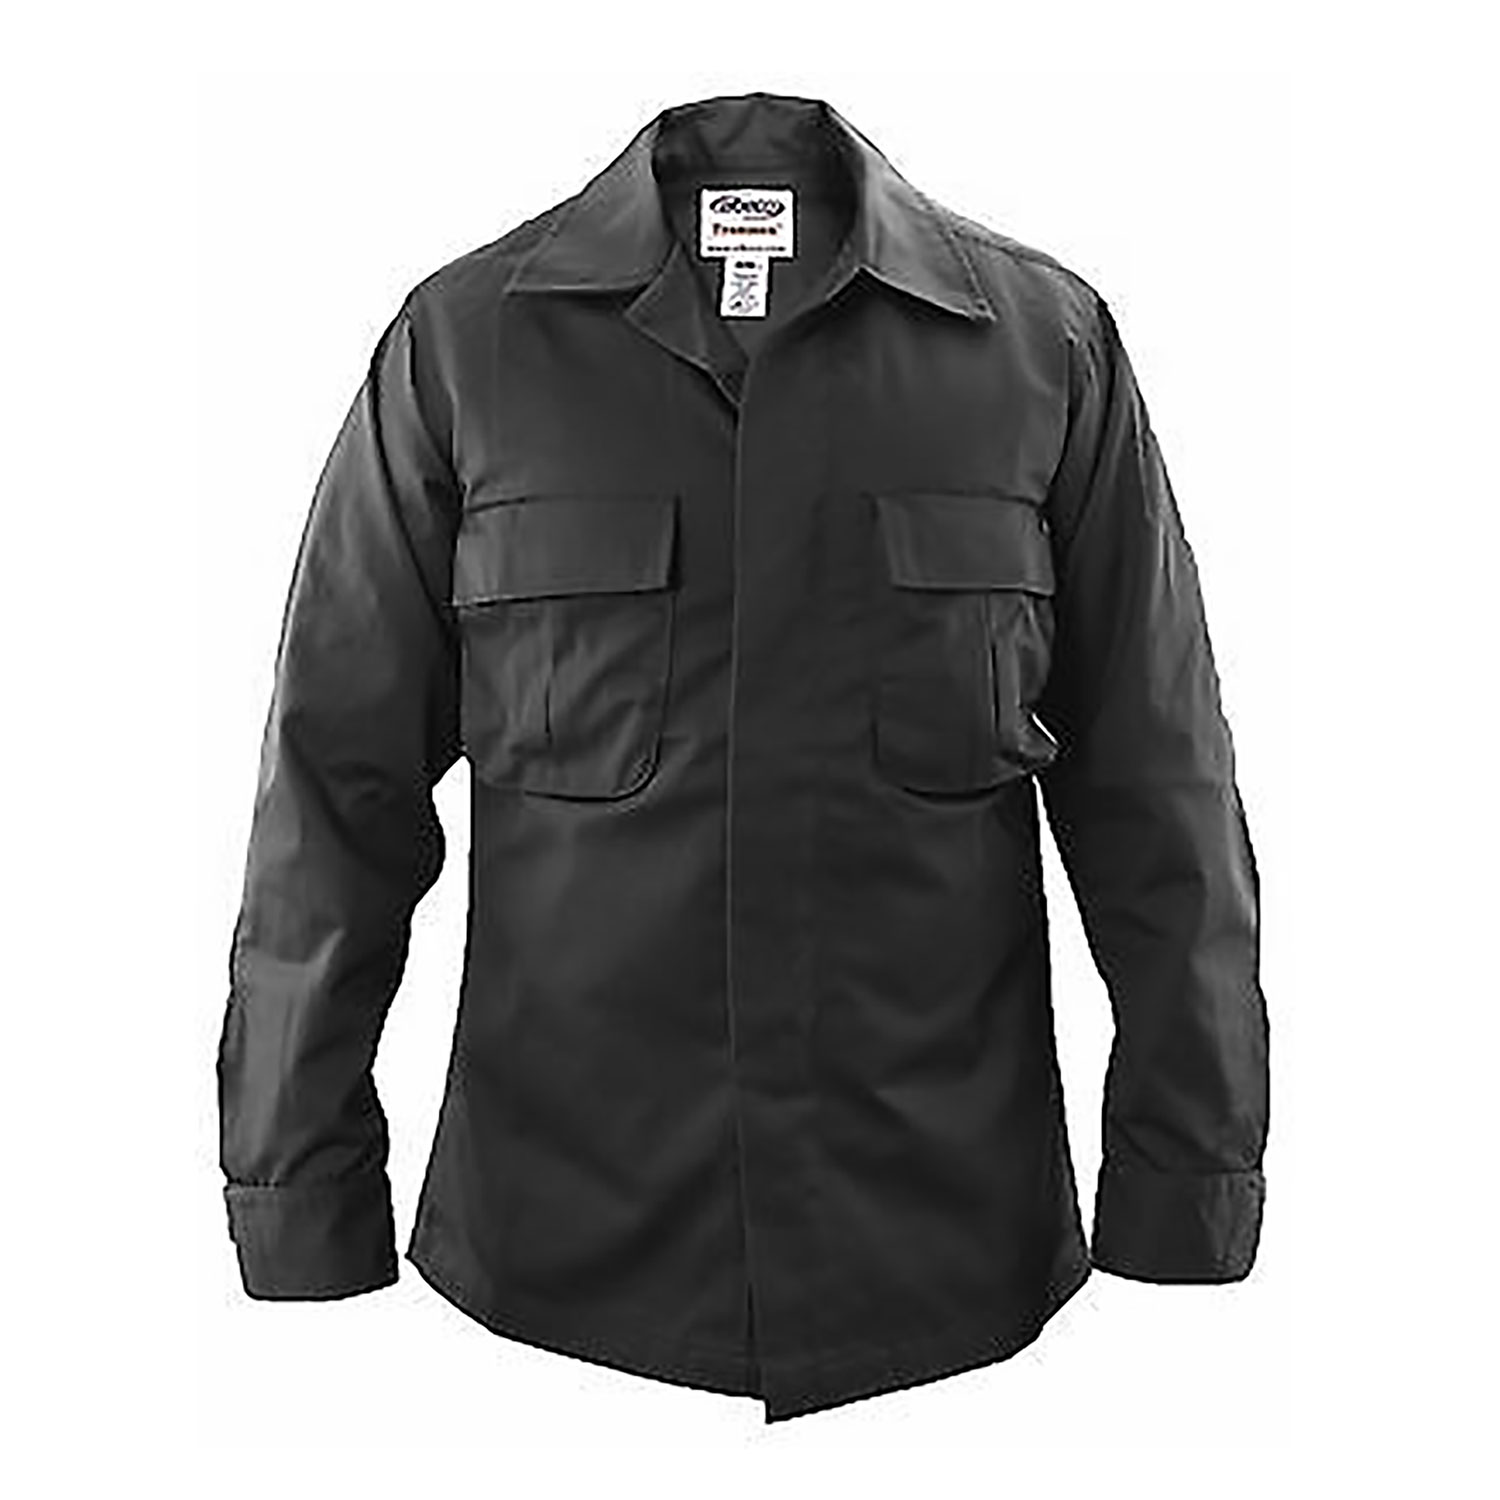 Elbeco Transcon Long Sleeve Tactical Duty Shirt